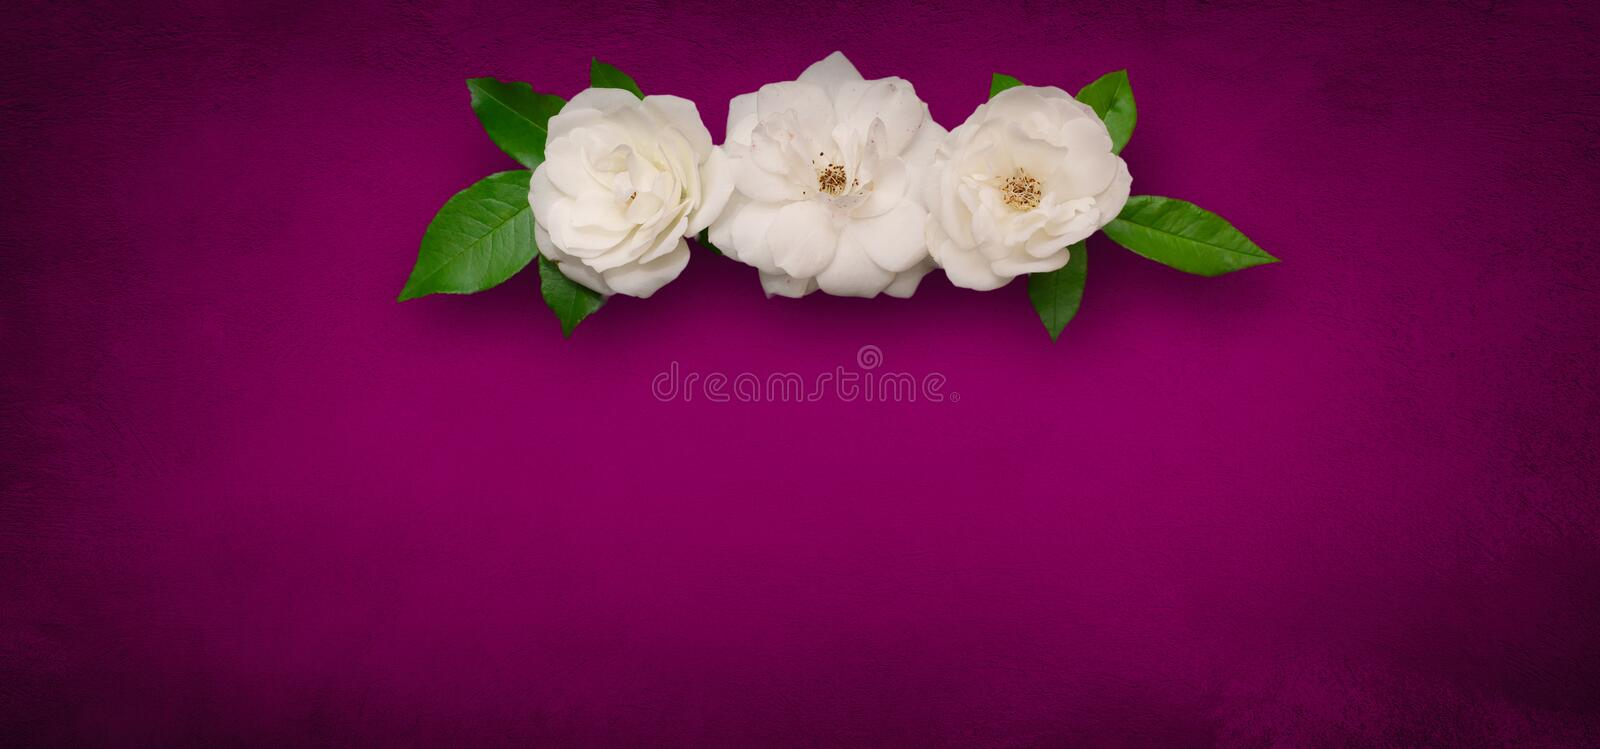 Wide Angle Flower background with white roses stock photography